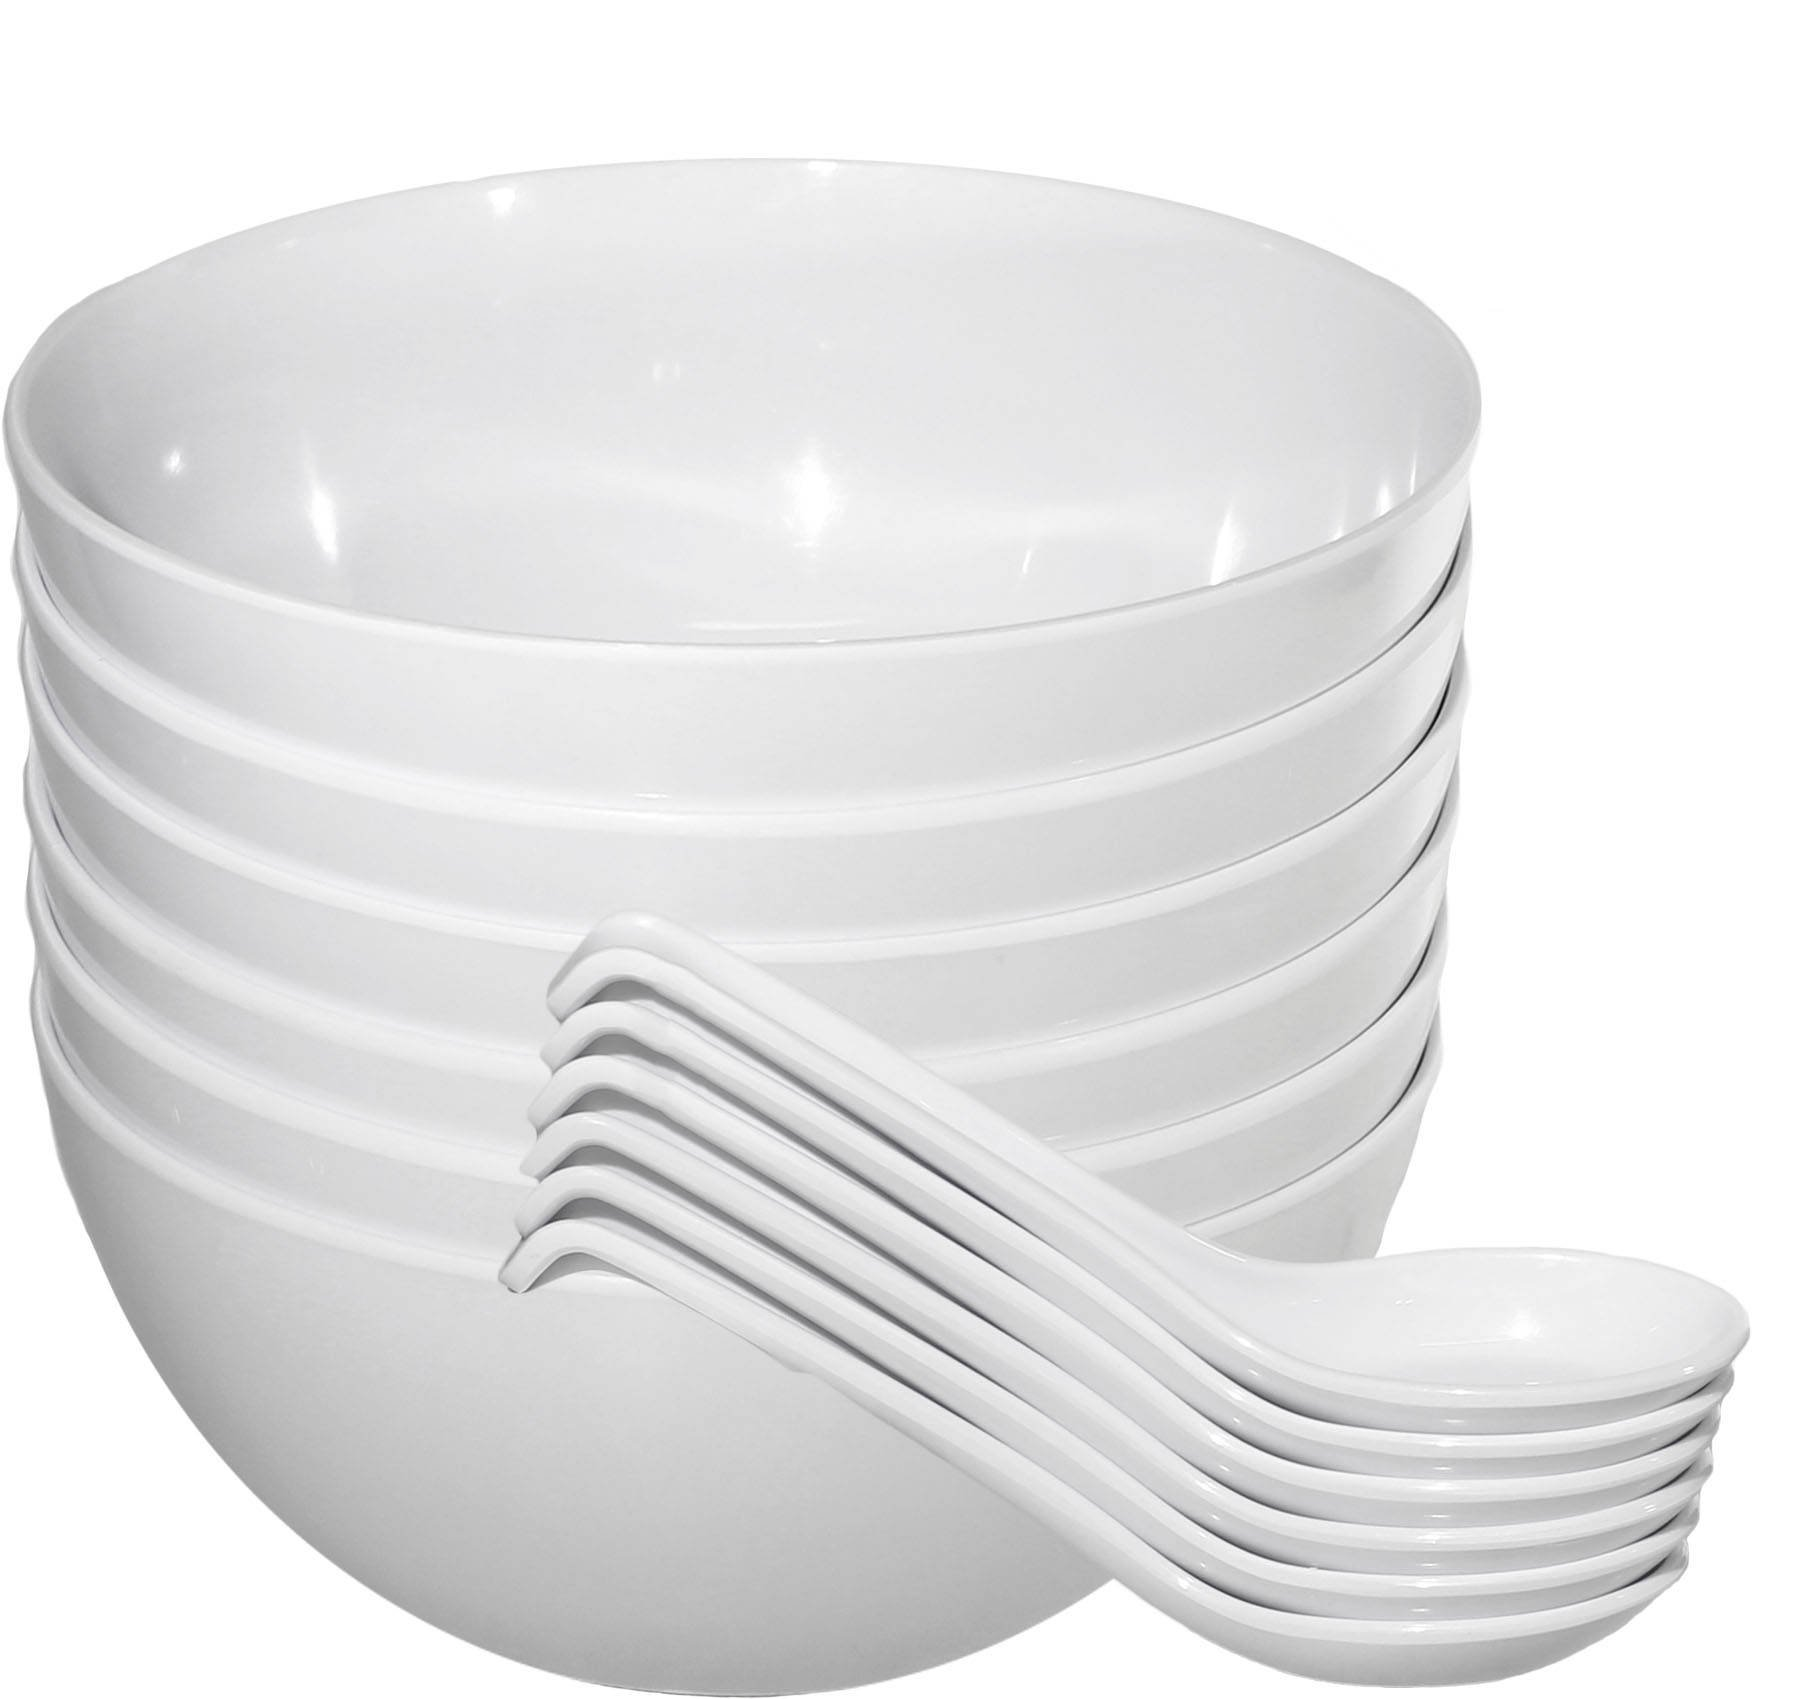 Chef Miso Set of 6 Extra Large Melamine Pho Bowls and Spoons - White 48 Ounce